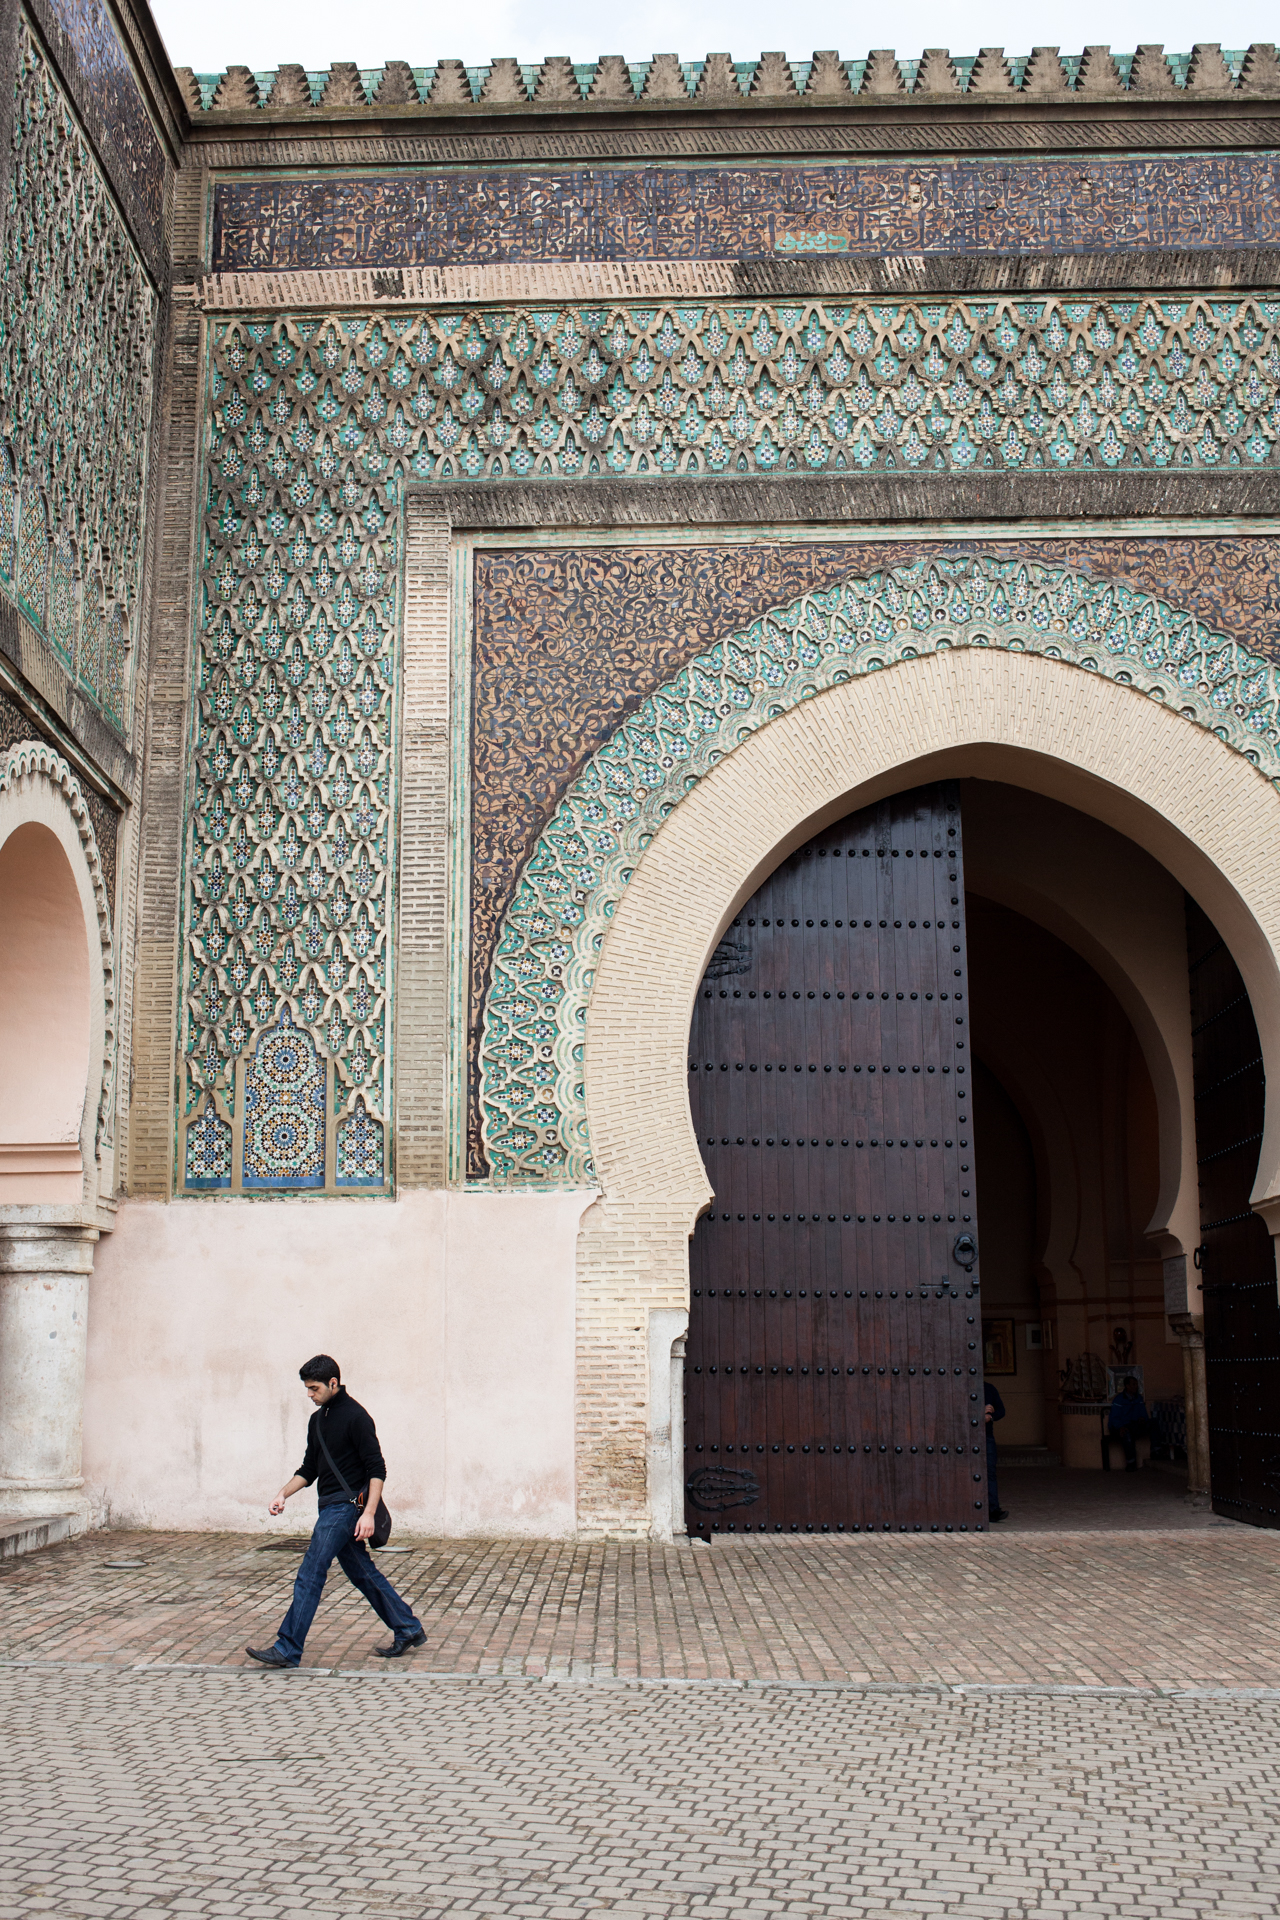 Outside the palace of Meknes